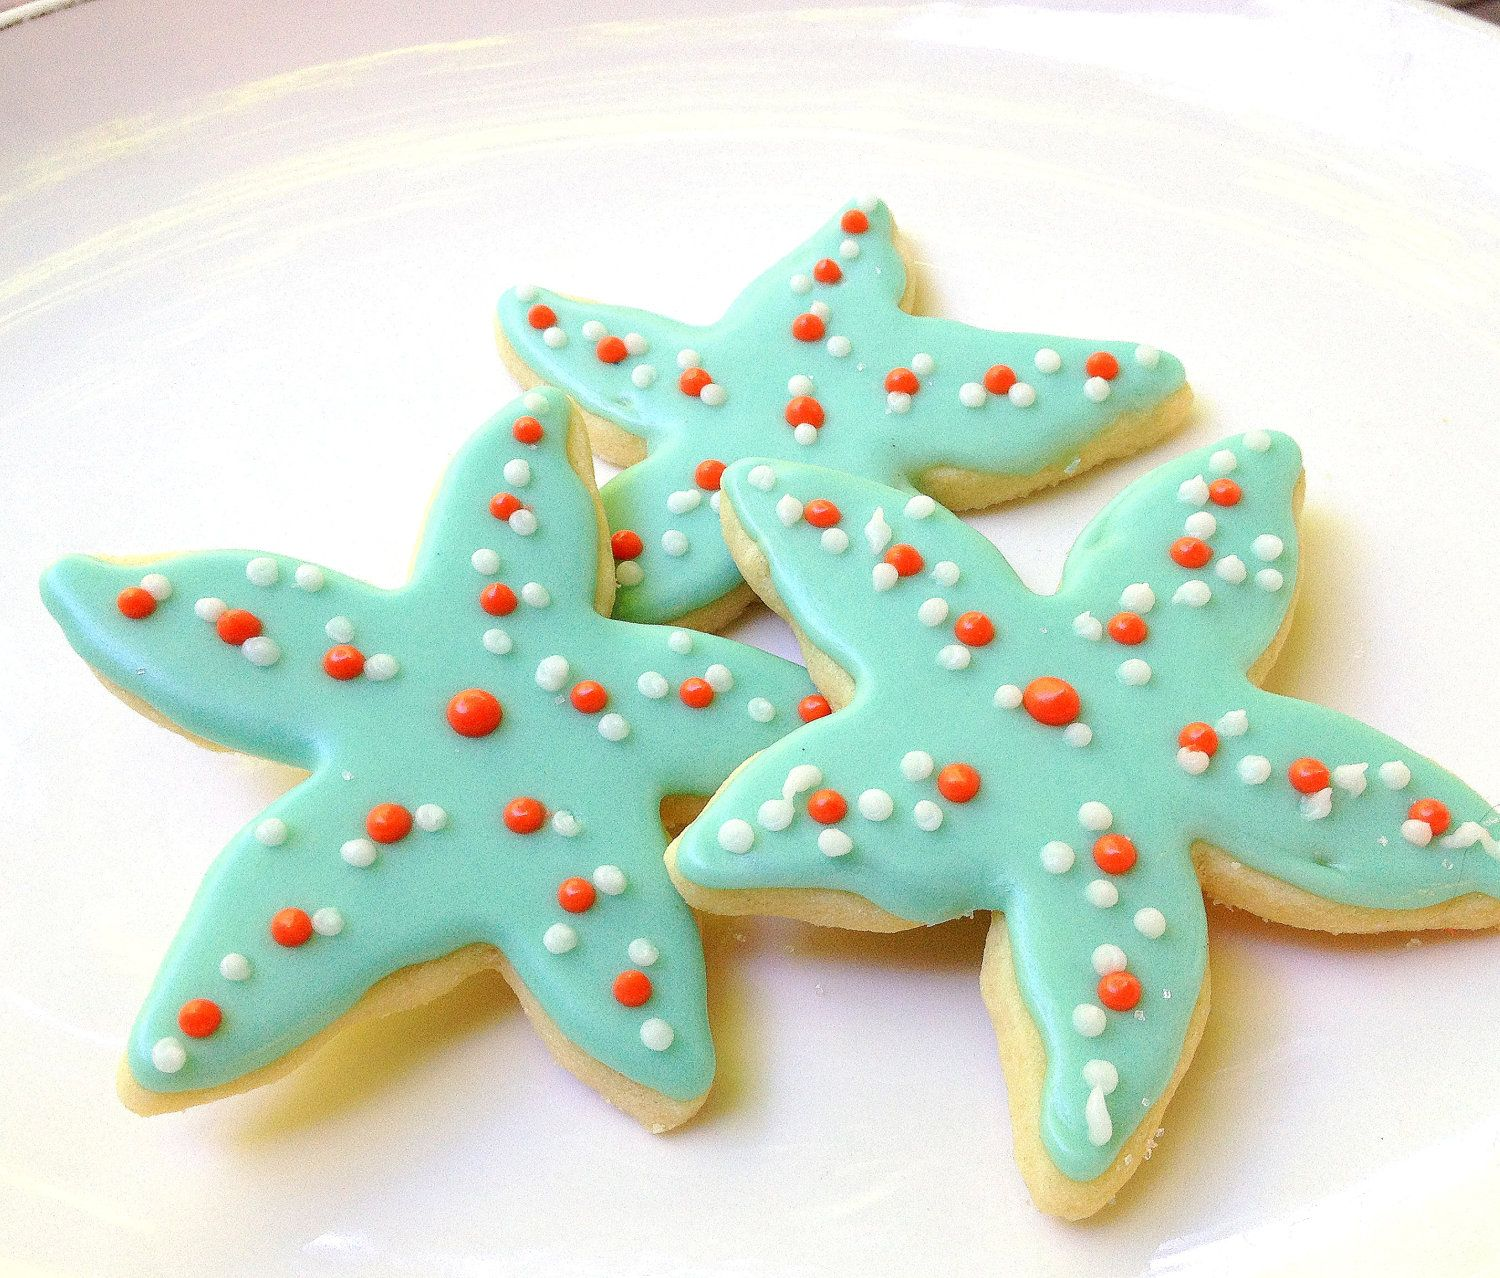 Starfish Sugar Cookie Aqua Iced Decorated by SugarMeDesserterie